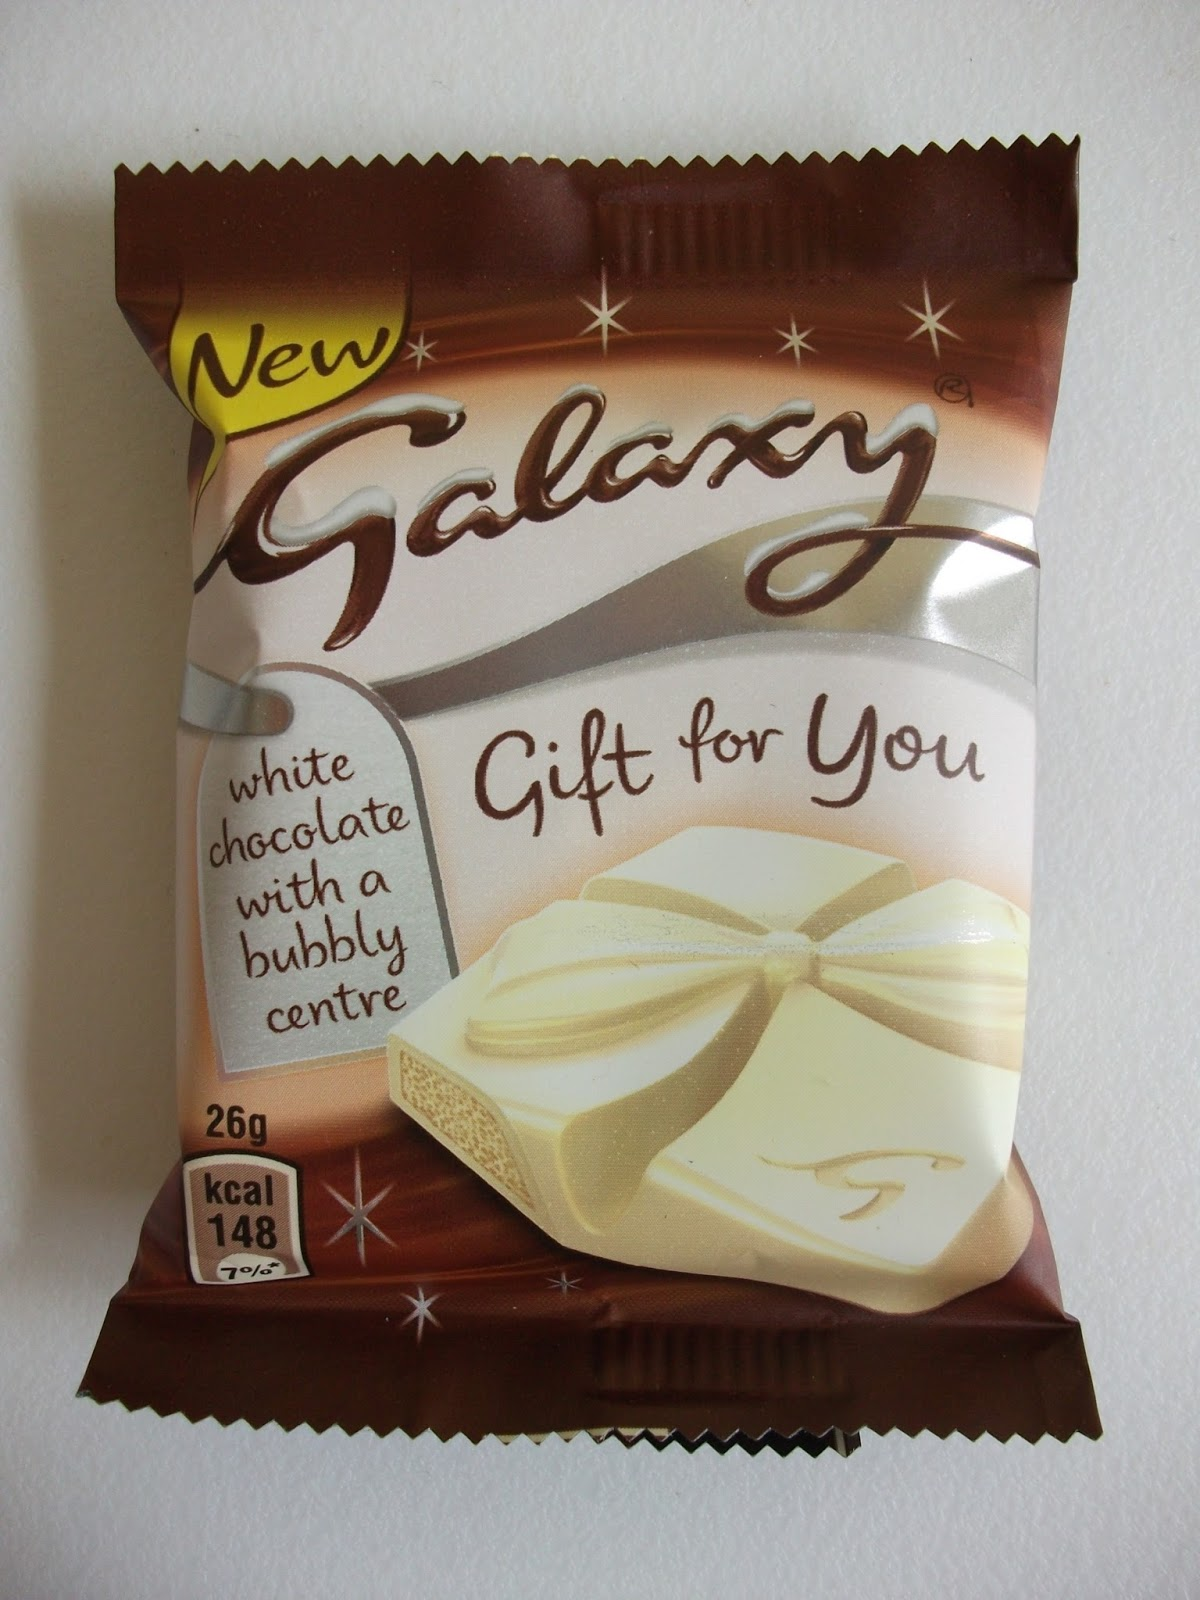 Kev's Snack Reviews: Galaxy Gift For You White Chocolate with a ...